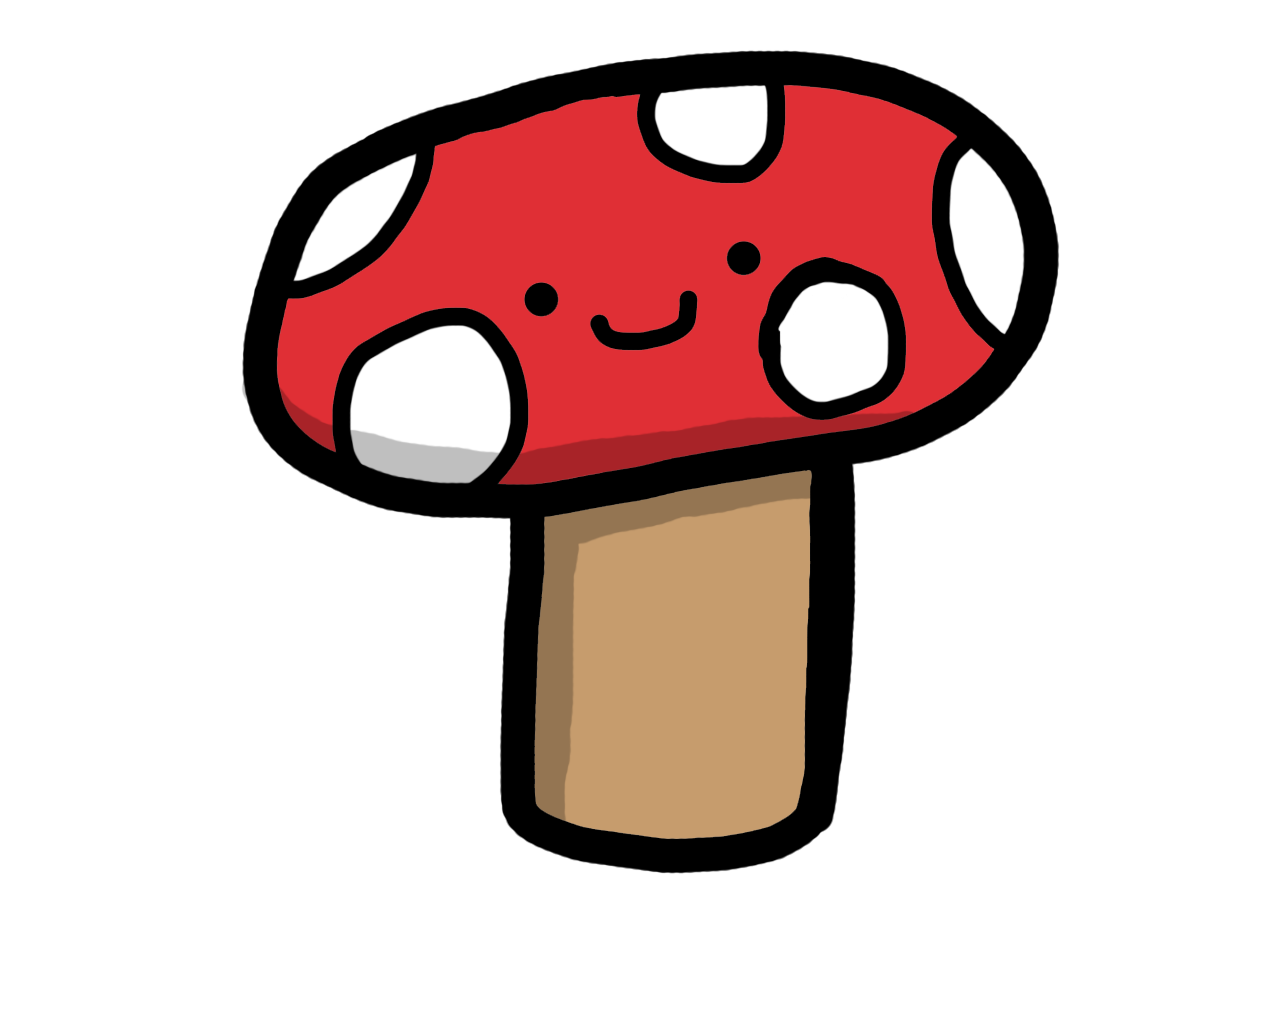 Fungus drawing cute. Collection of mushroom